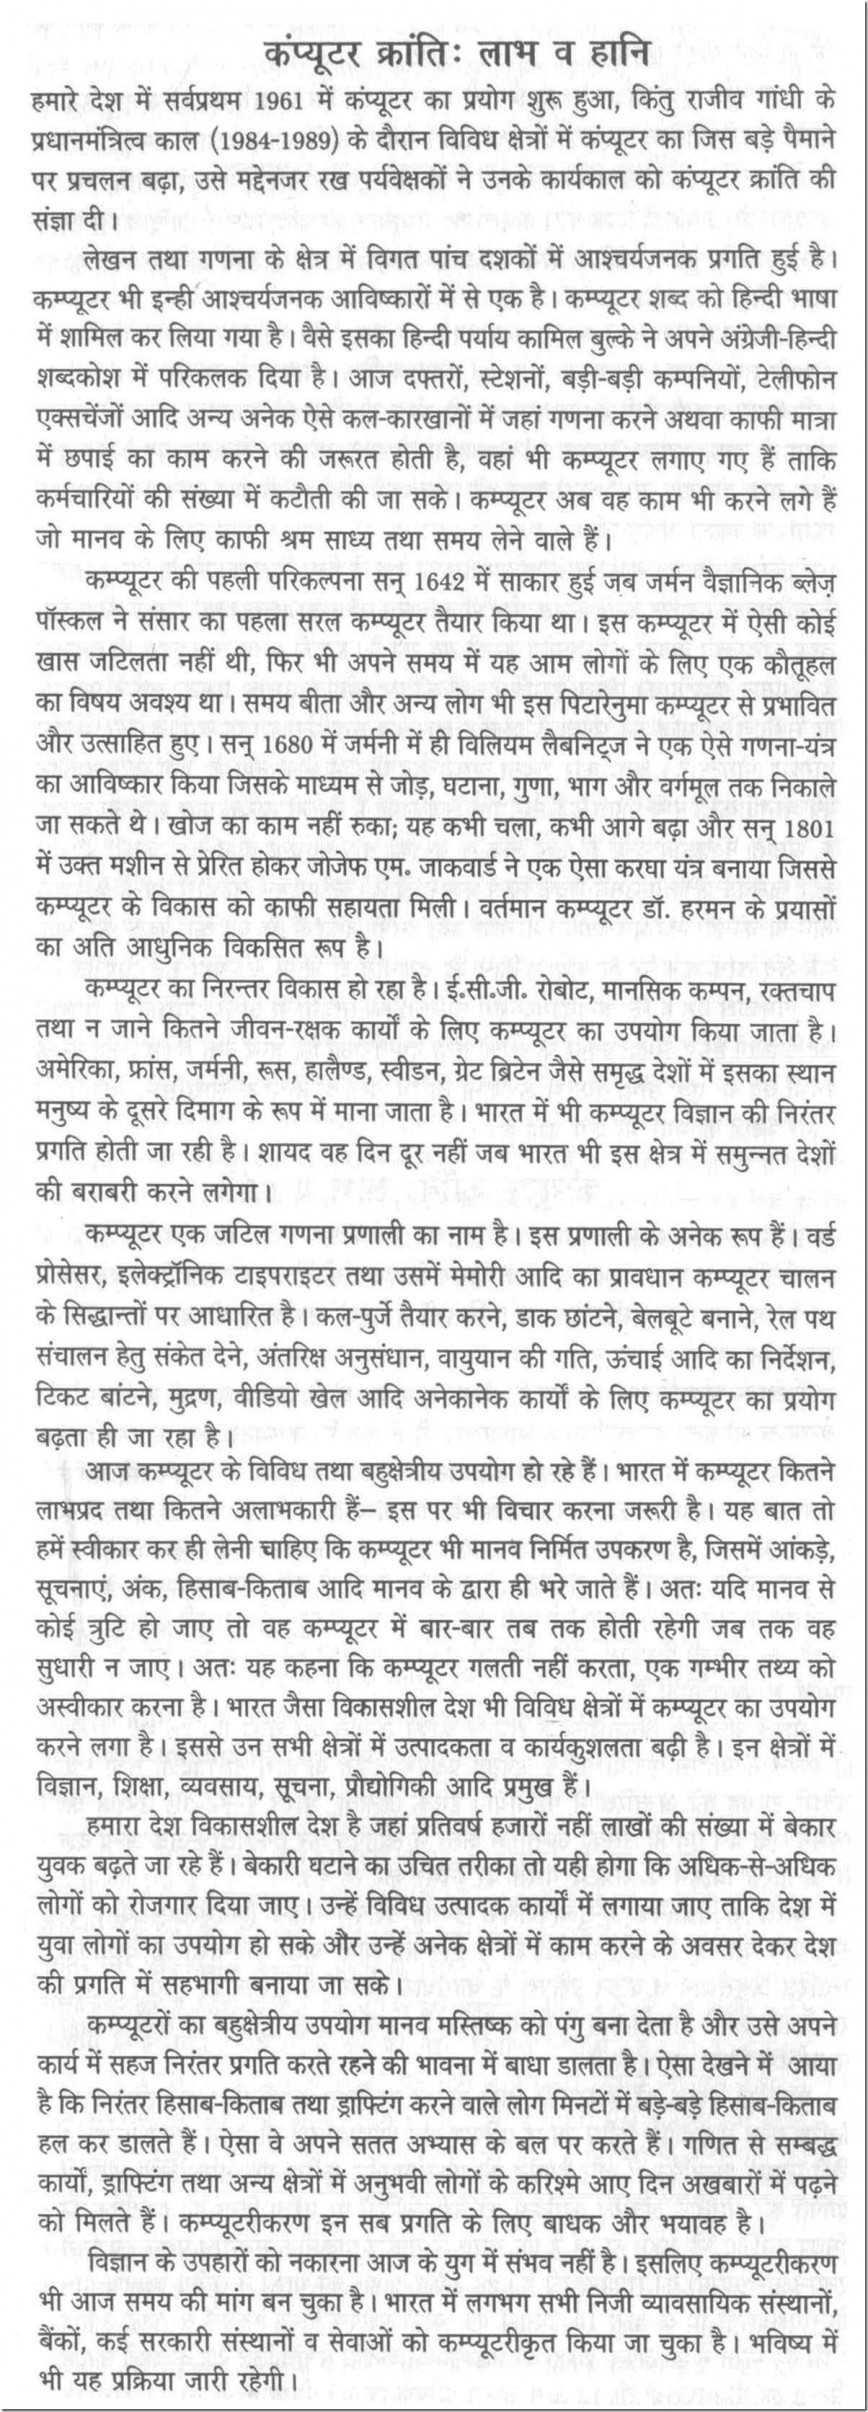 007 Essay Example 10008 Thumb Advantage And Disadvantage Of Shocking Science Advantages Disadvantages Pdf In Hindi English 868